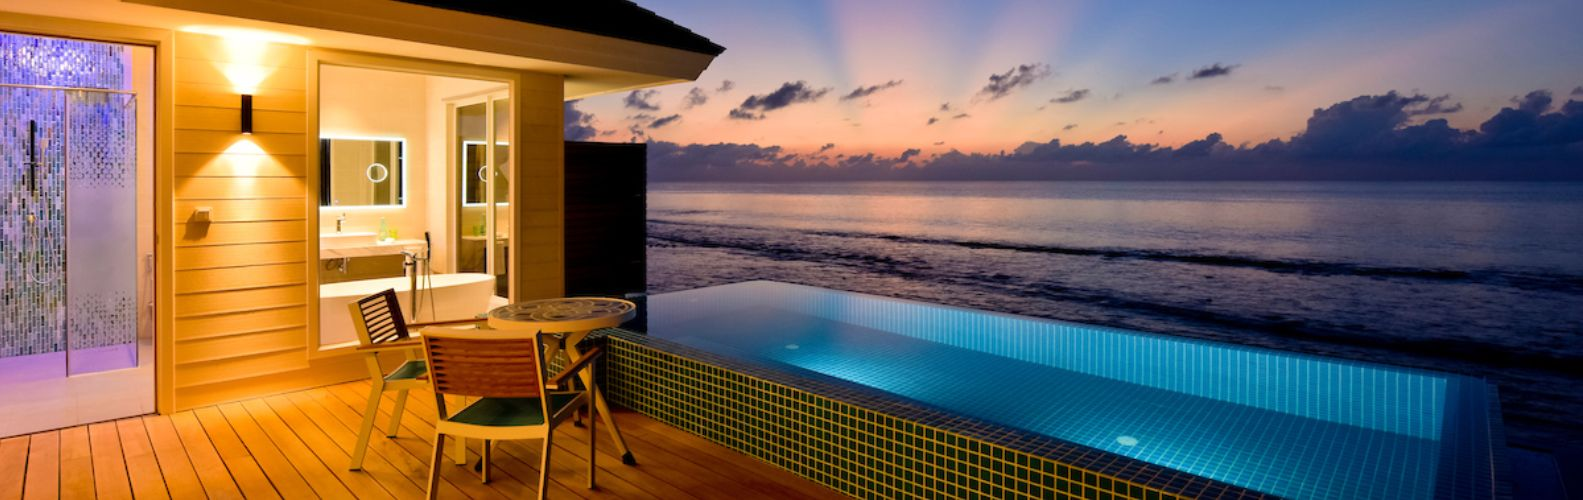 Kandima Maldives Ocean Pool Villa sunset view